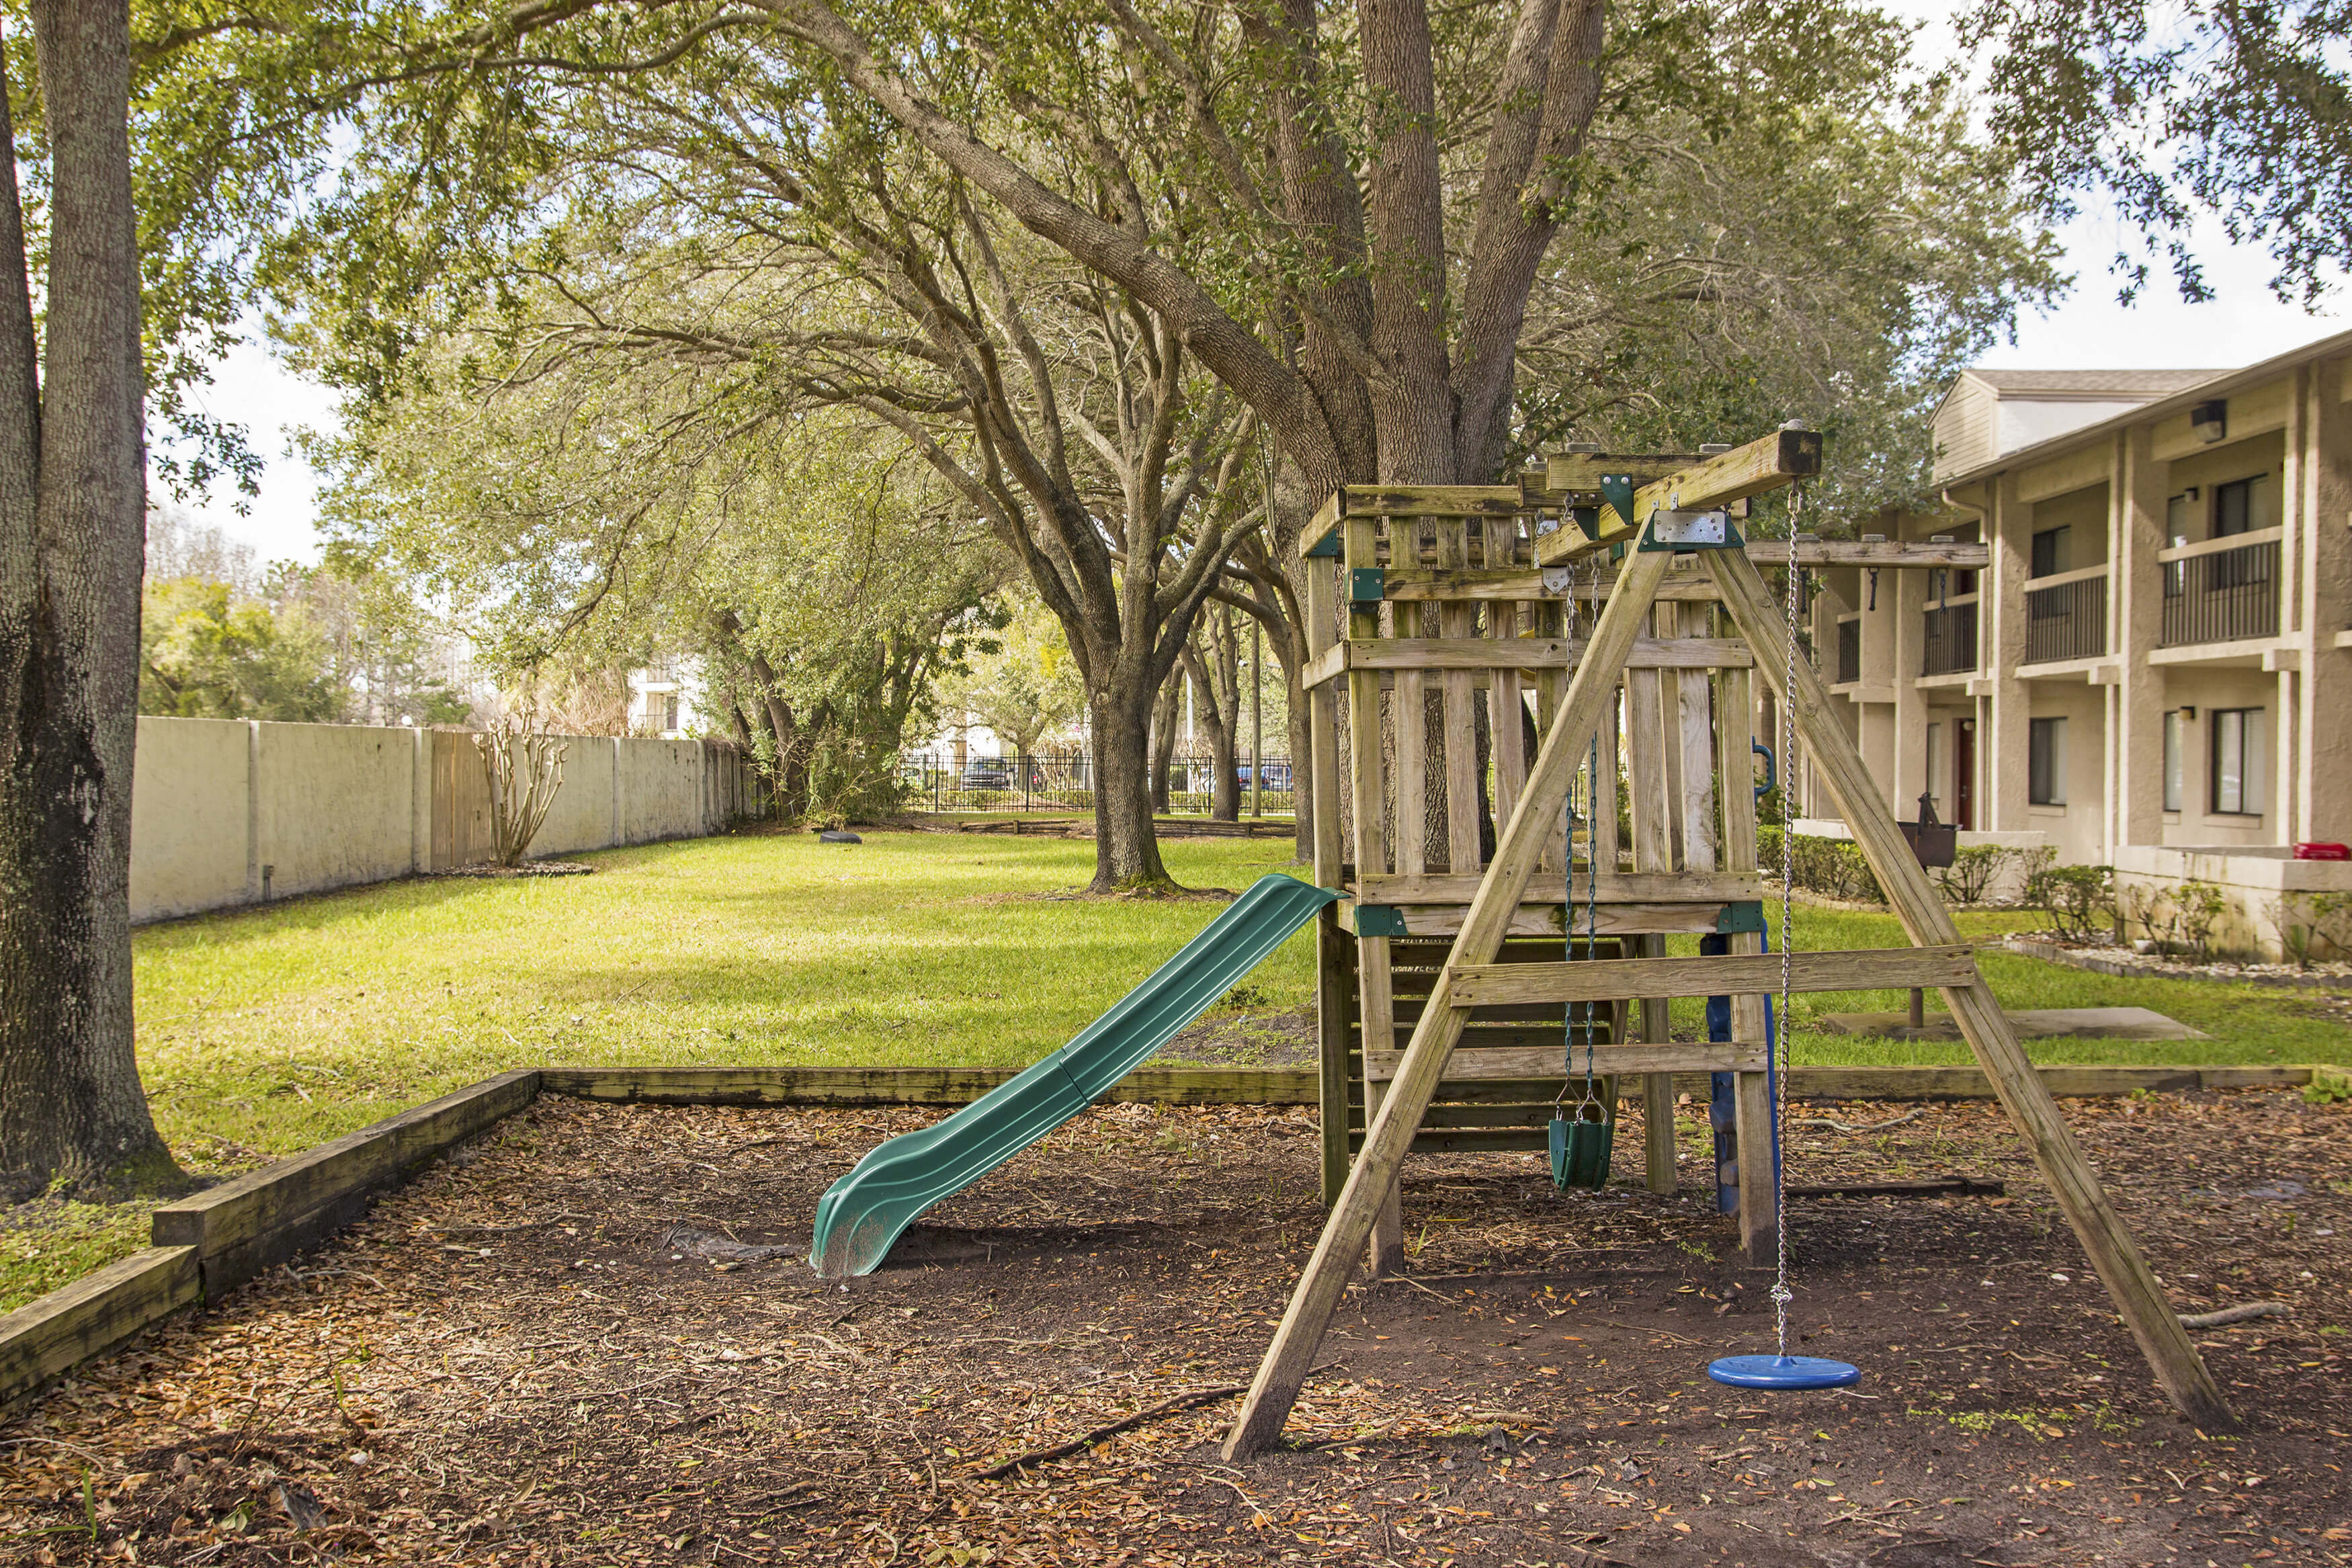 Club Orlando children's play area with plenty of space to have fun under the shade of the trees | Westgate Resorts in Orlando FL